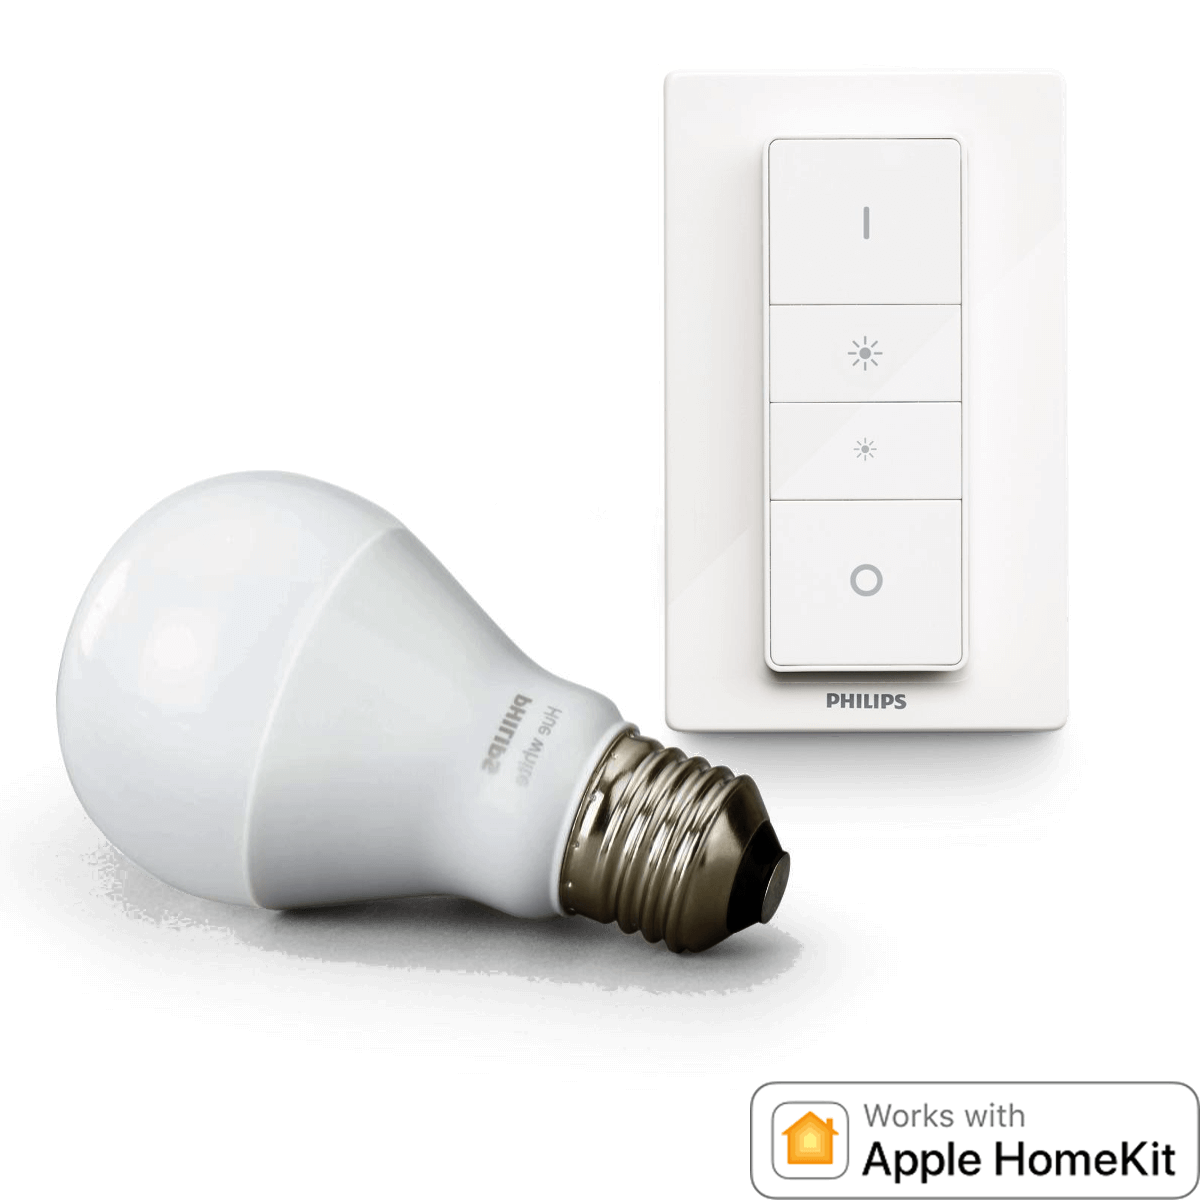 philips hue led wireless dimming kit hier bestellen smart home ger te hier online. Black Bedroom Furniture Sets. Home Design Ideas